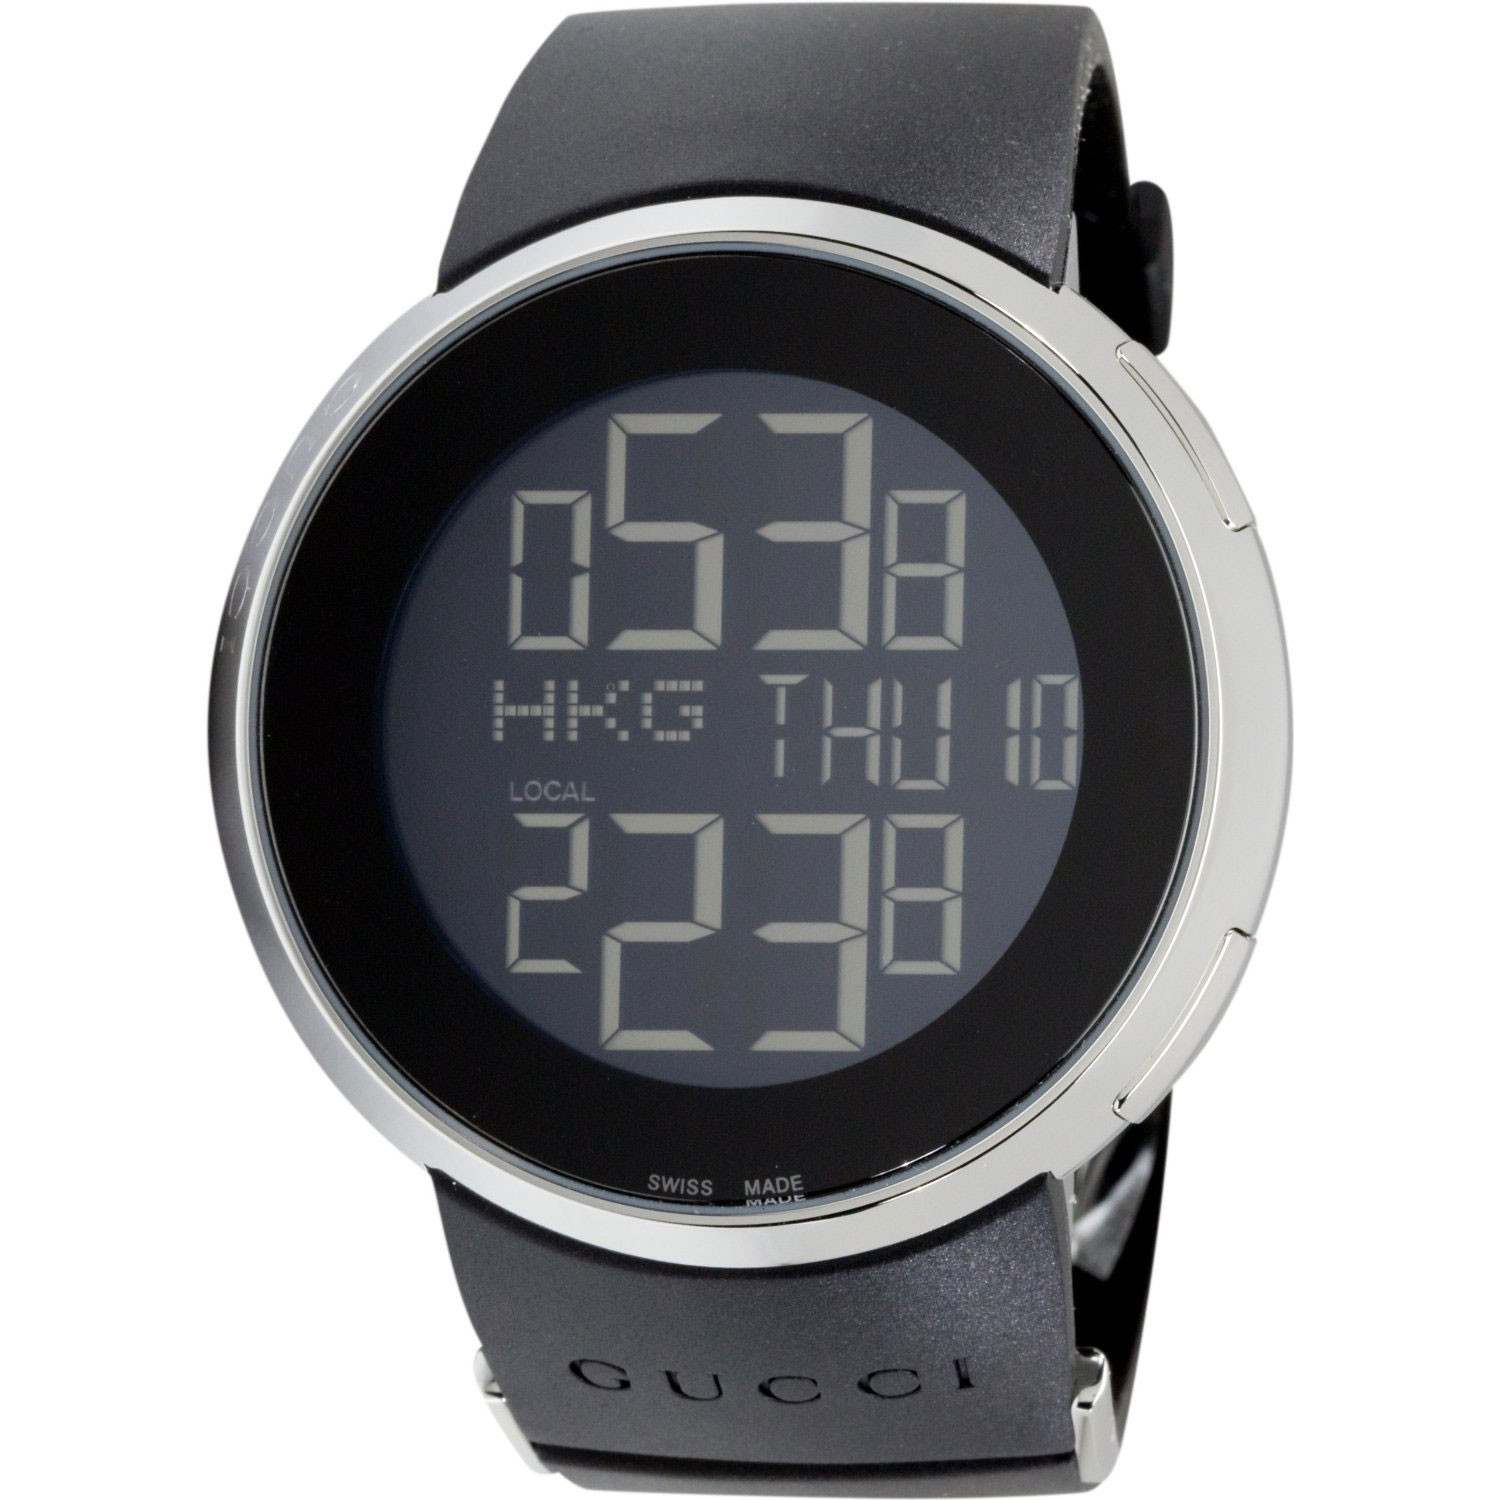 Gucci 114 I Gucci Ya114202 Digital Display Black Rubber